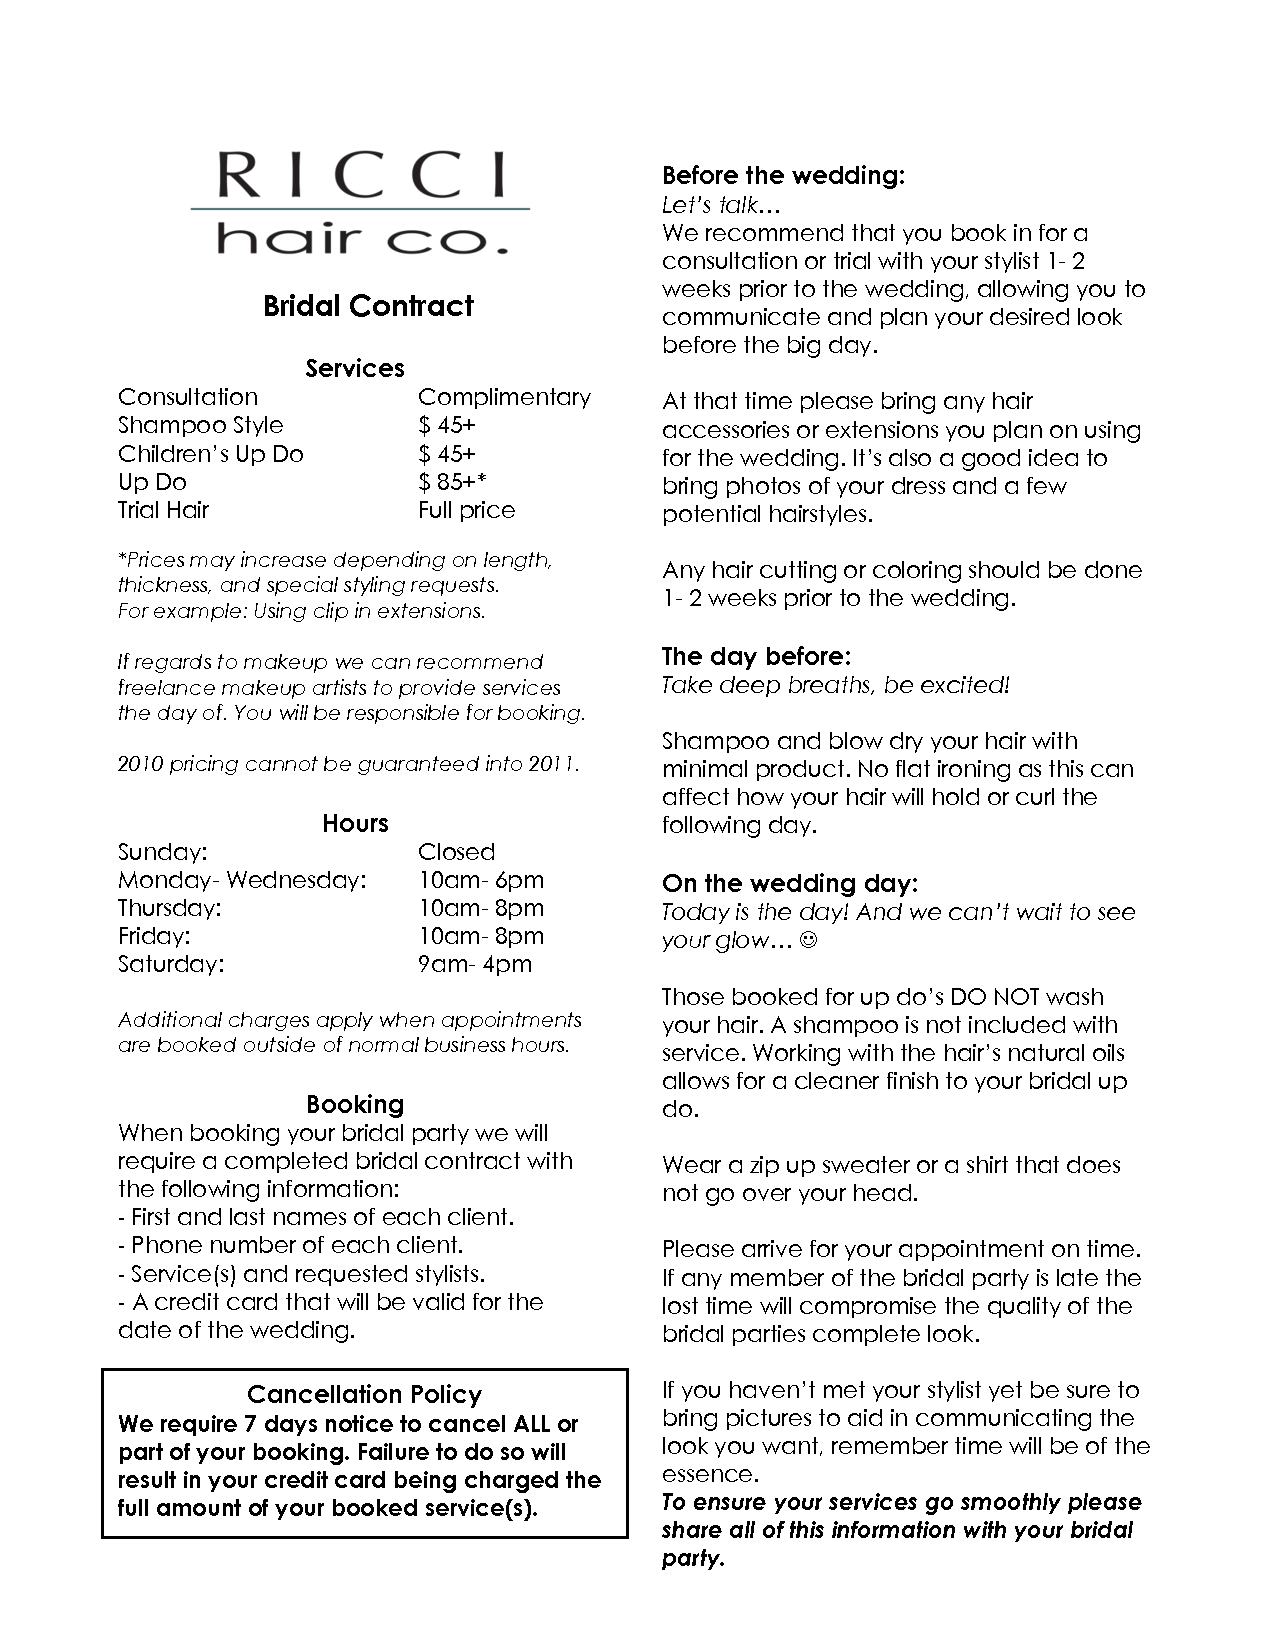 Bridalhaircotract  Bridal Hair Stylist Contract  Taylor Made